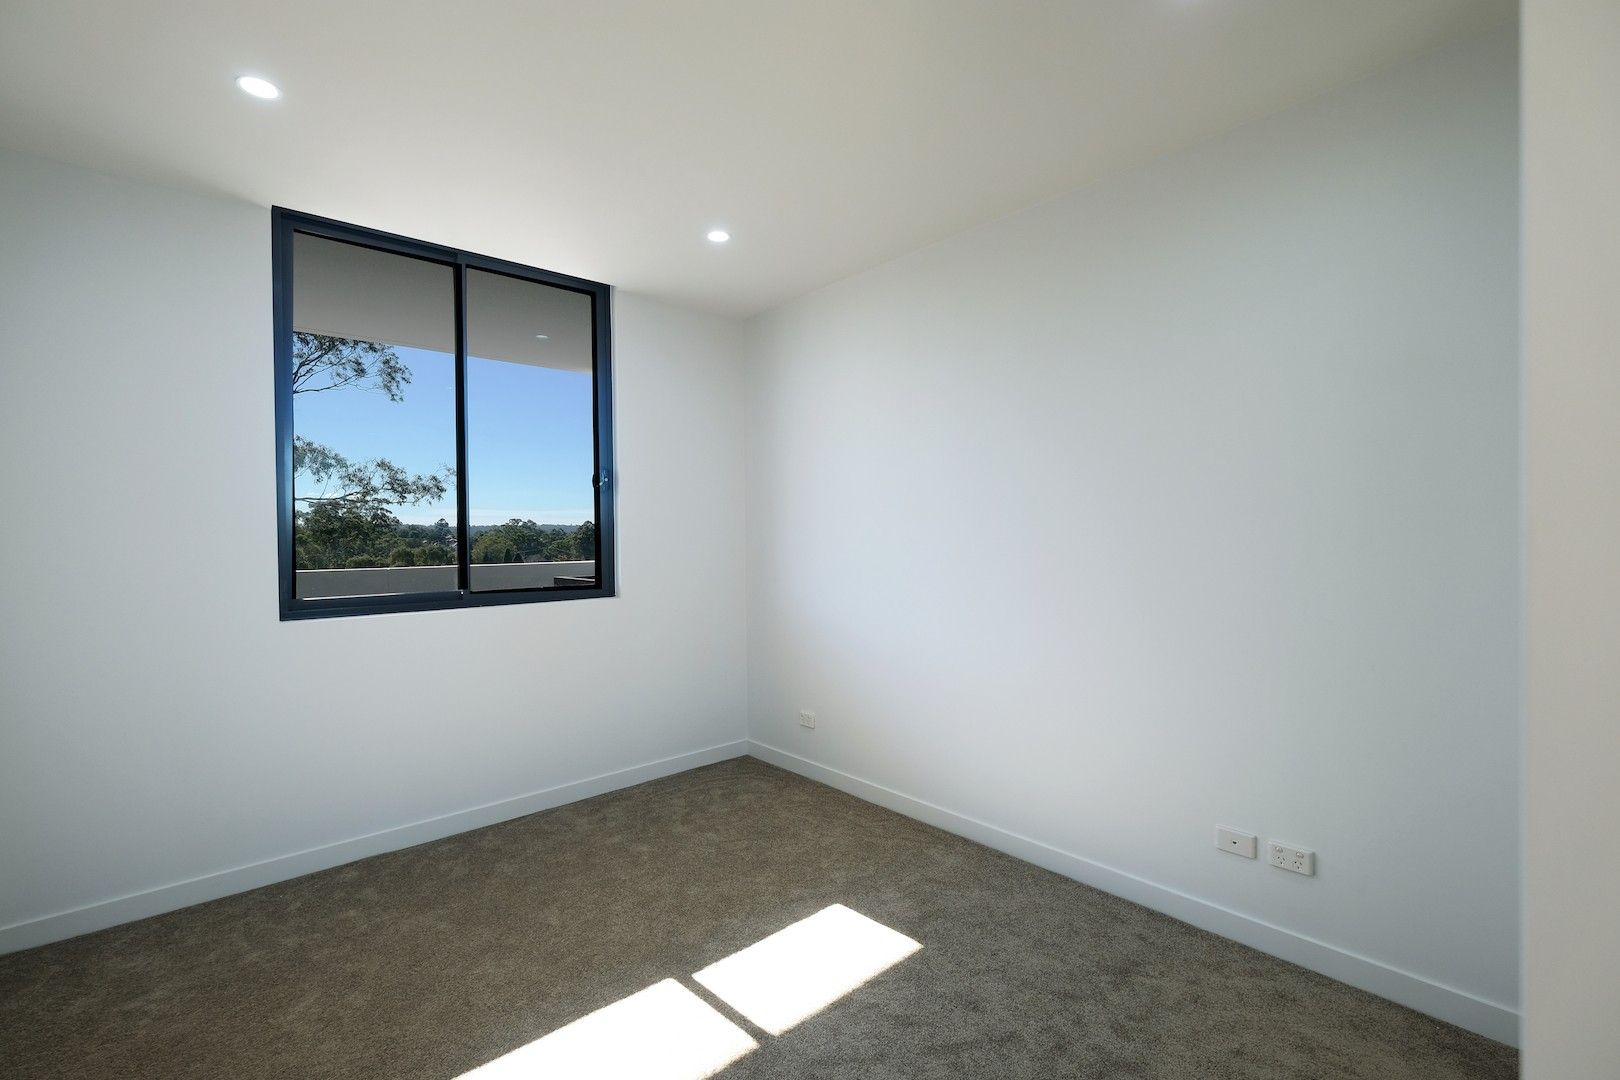 17-25 Epping Rd, Epping NSW 2121, Image 1